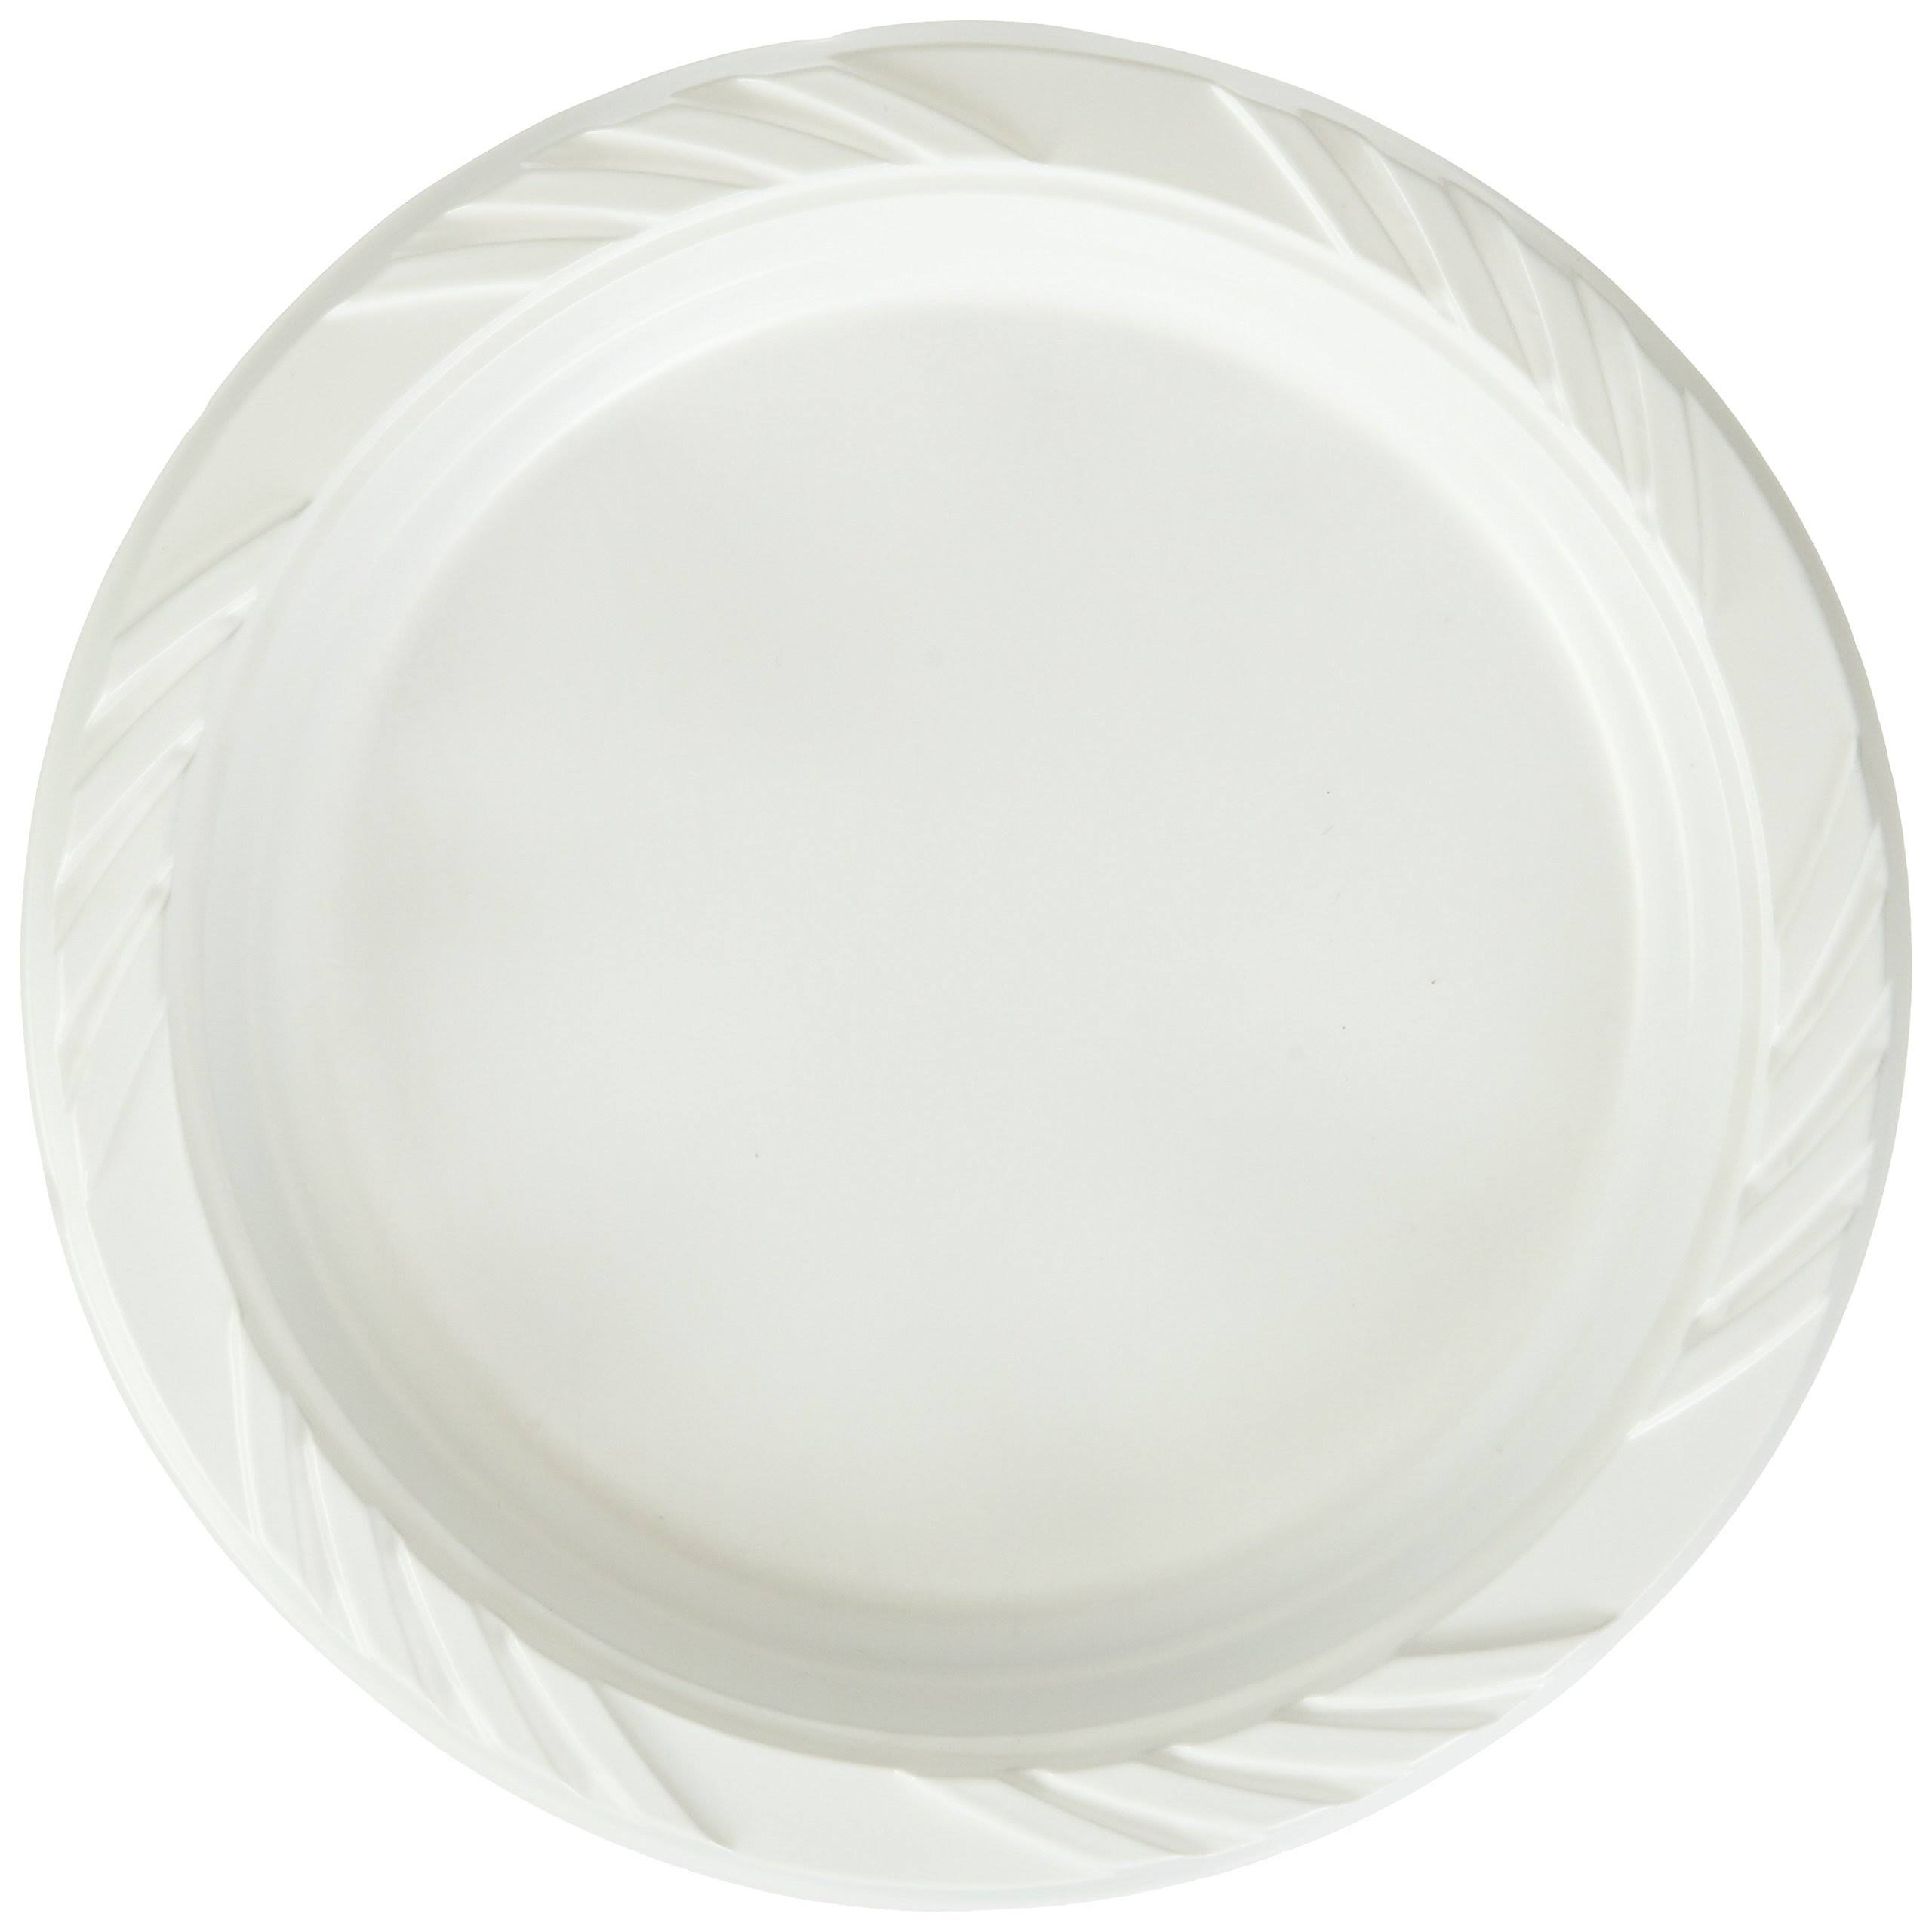 Blue Sky Disposable Plastic Plates - x100, 6in, White